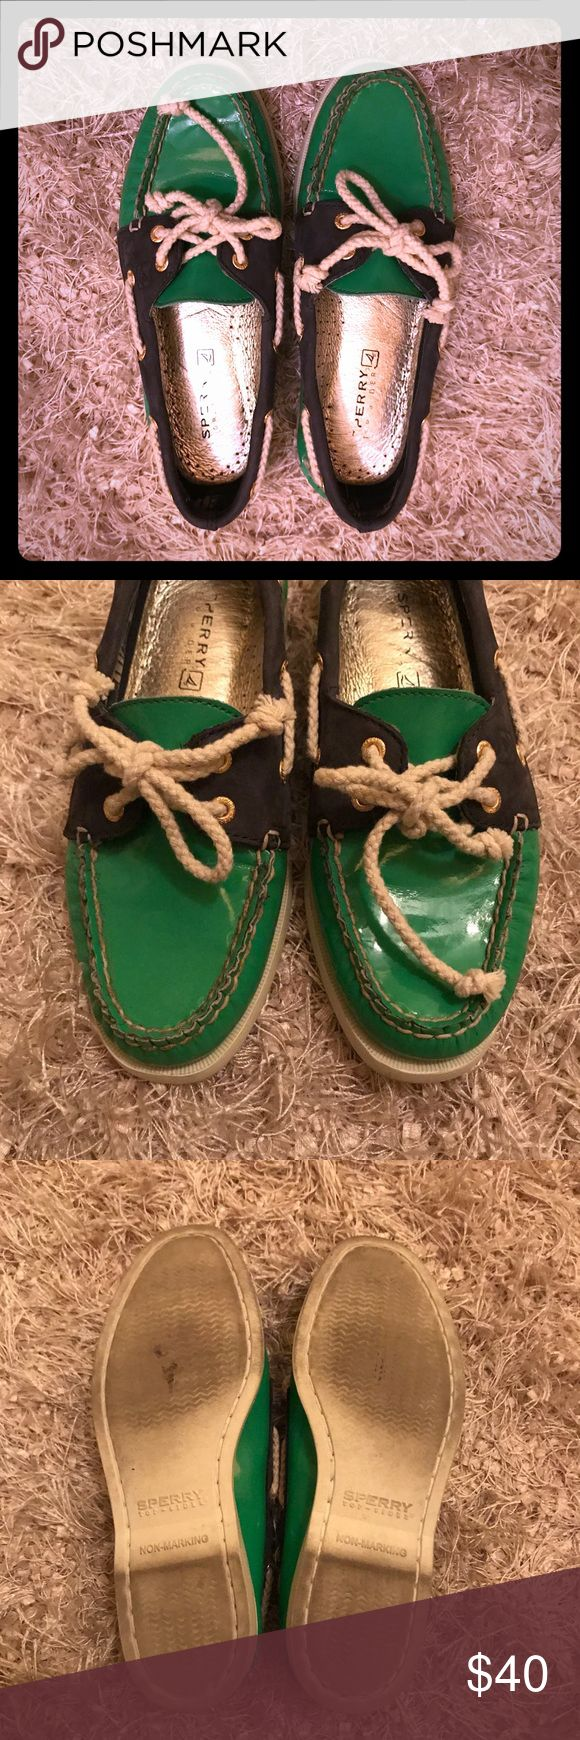 Green and Navy Sperry Boat Shoes Size 6. Green and navy blue boat shoes. In great condition. Sperry Shoes Flats & Loafers